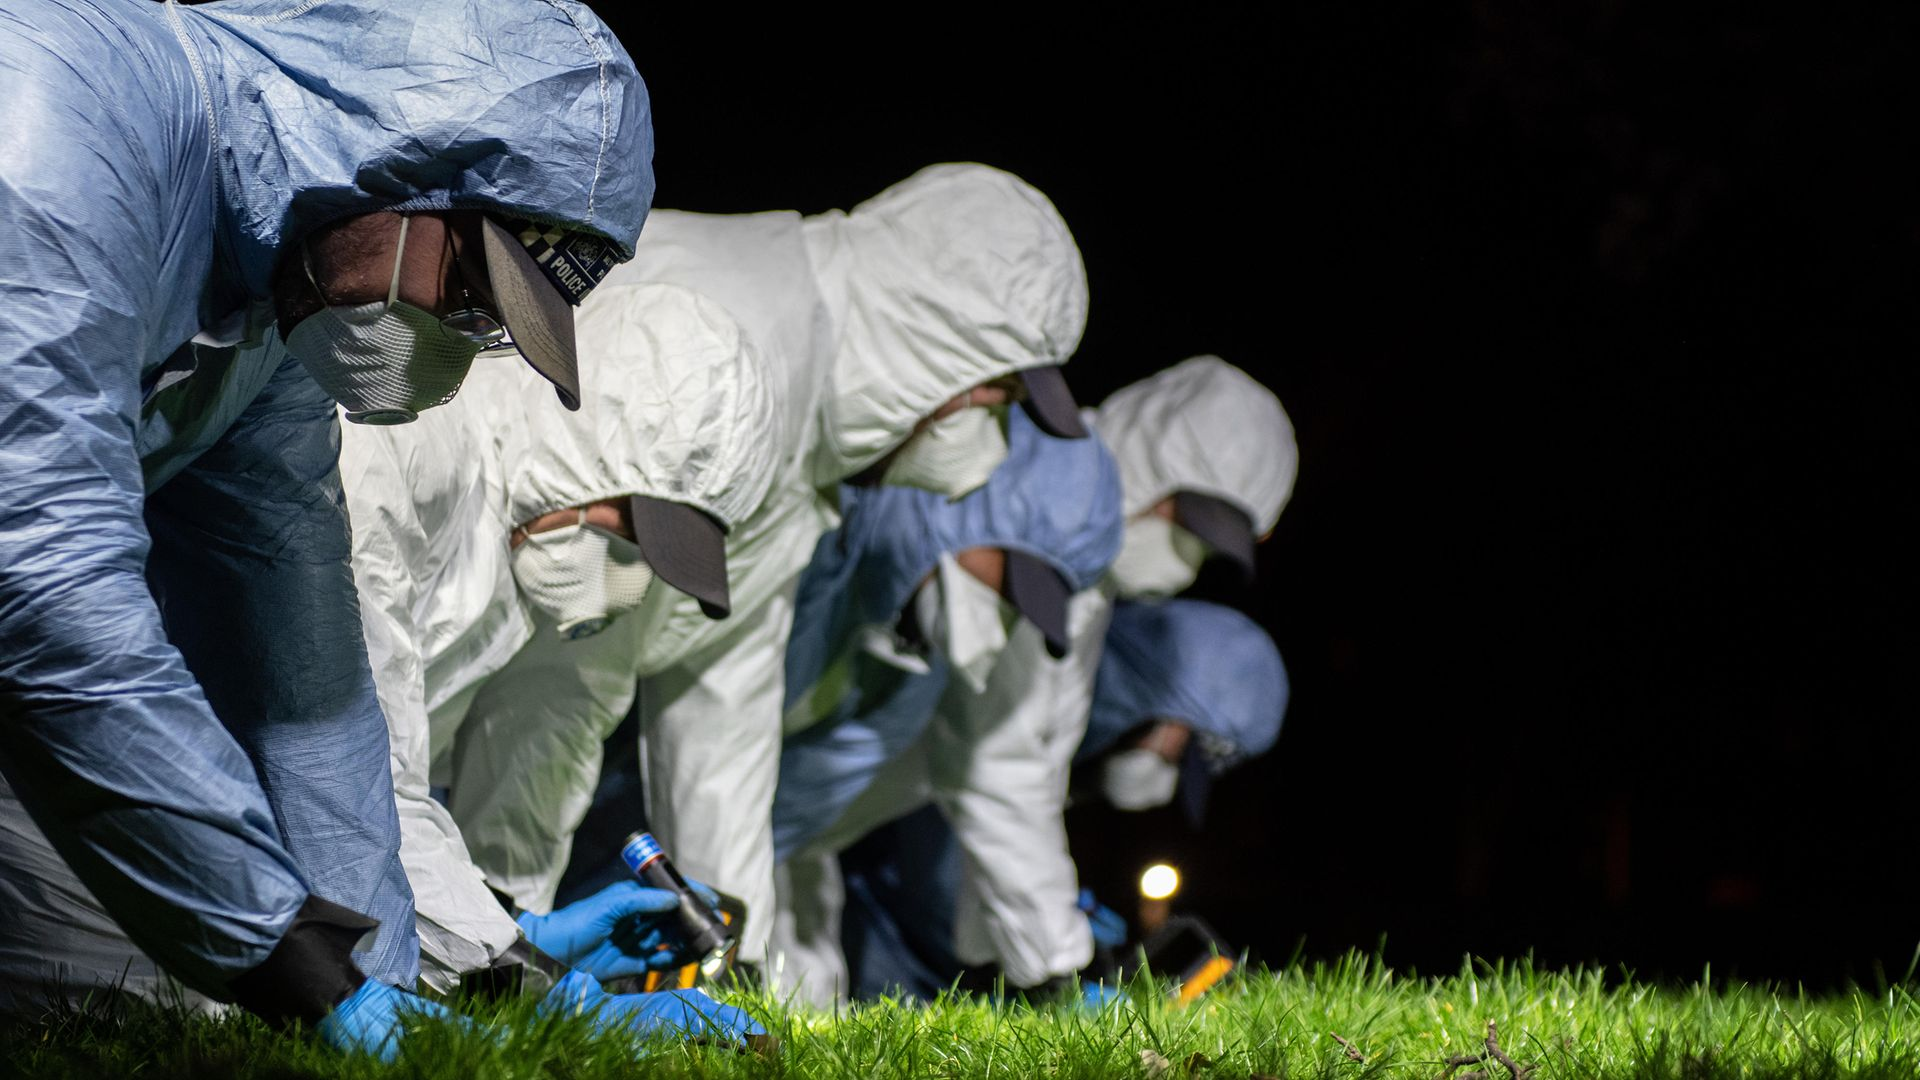 SEARCHING: Police officers conduct a fingertip search near the spot in south London where Sarah Everard was last seen - Credit: Getty Images